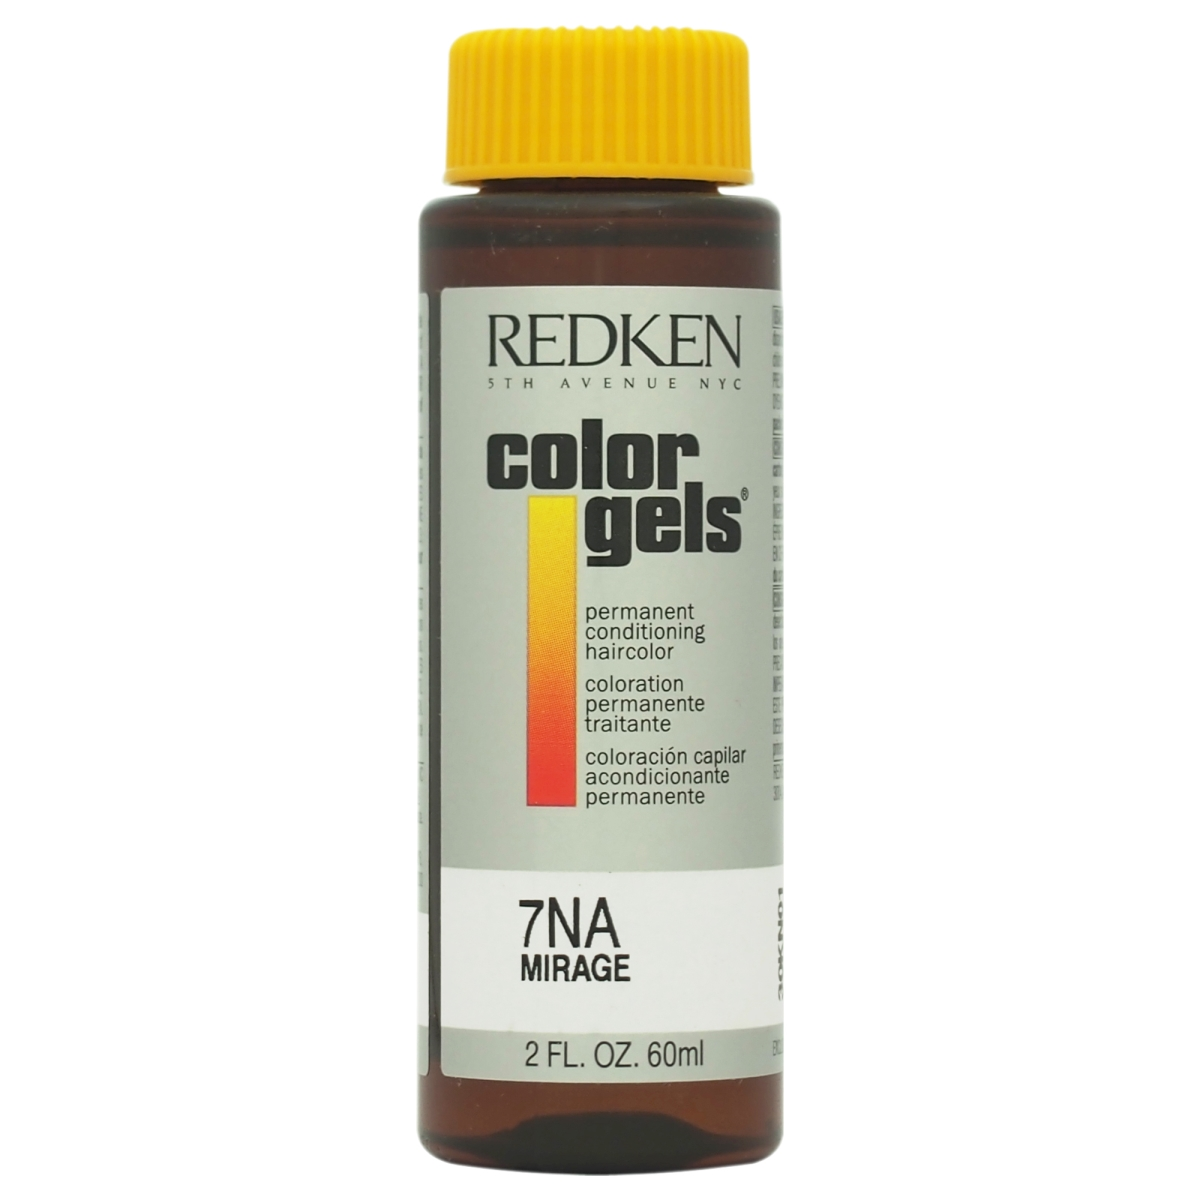 Redken U-HC-8192 2 oz Color Gels Permanent Conditioning 7NA Mirage Hair Color for Unisex